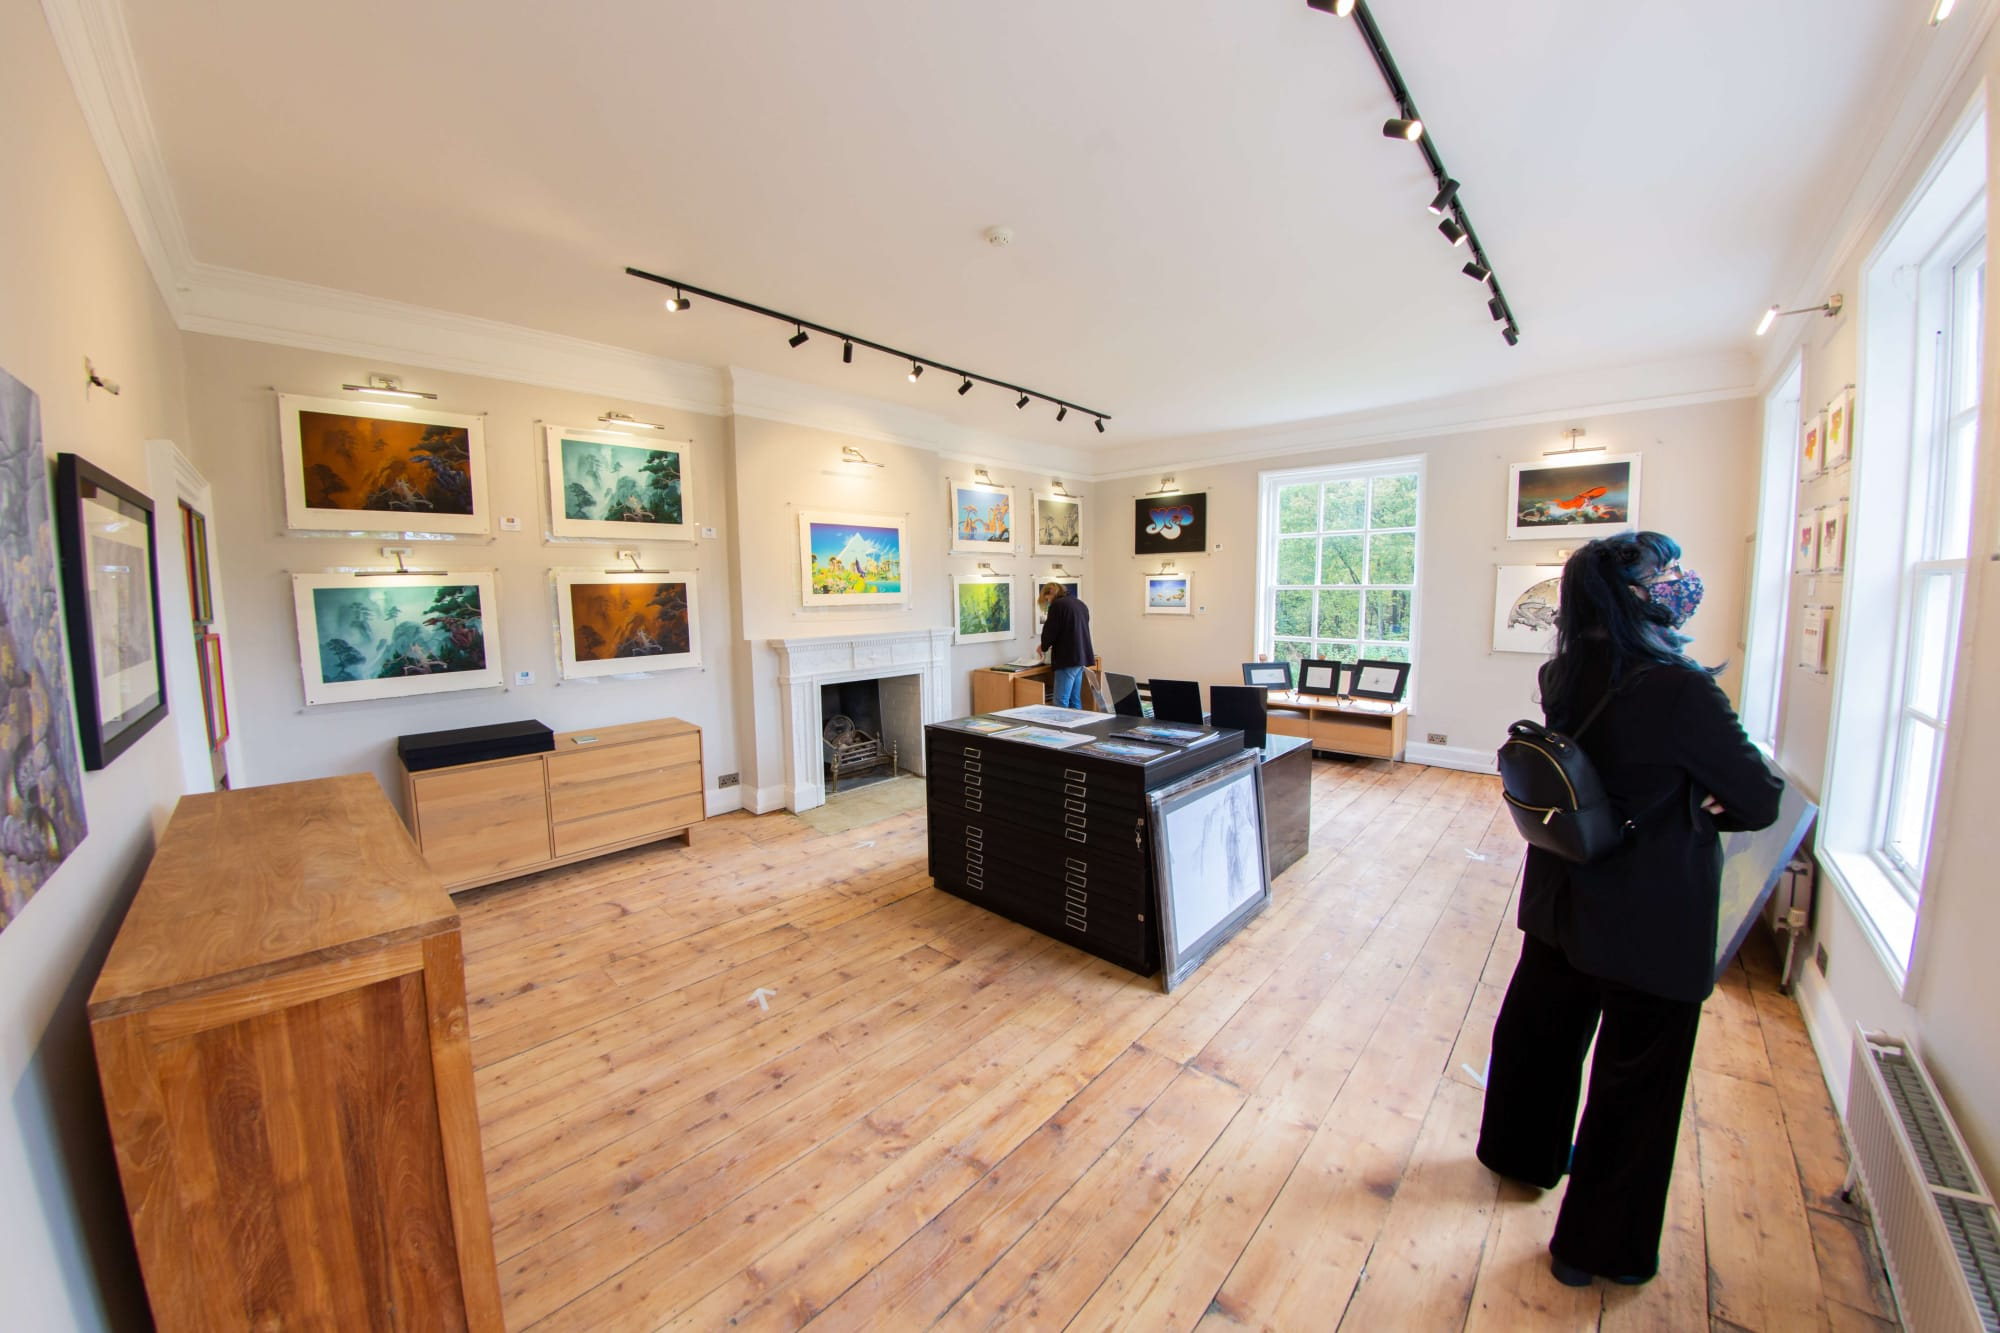 Welcome to The Gallery: Now featuring the Pathways Exhibition 2020